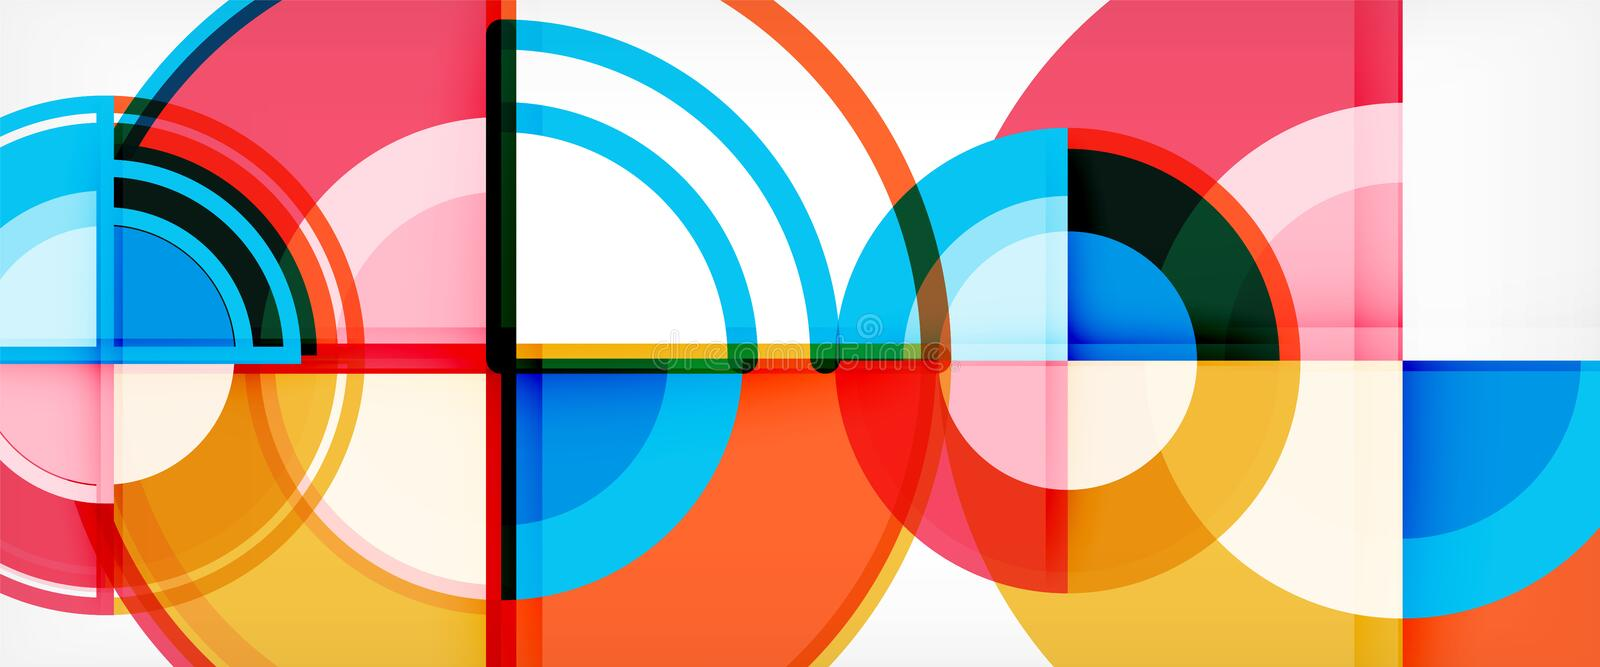 Circle abstract background, bright colorful round geometric shapes vector illustration